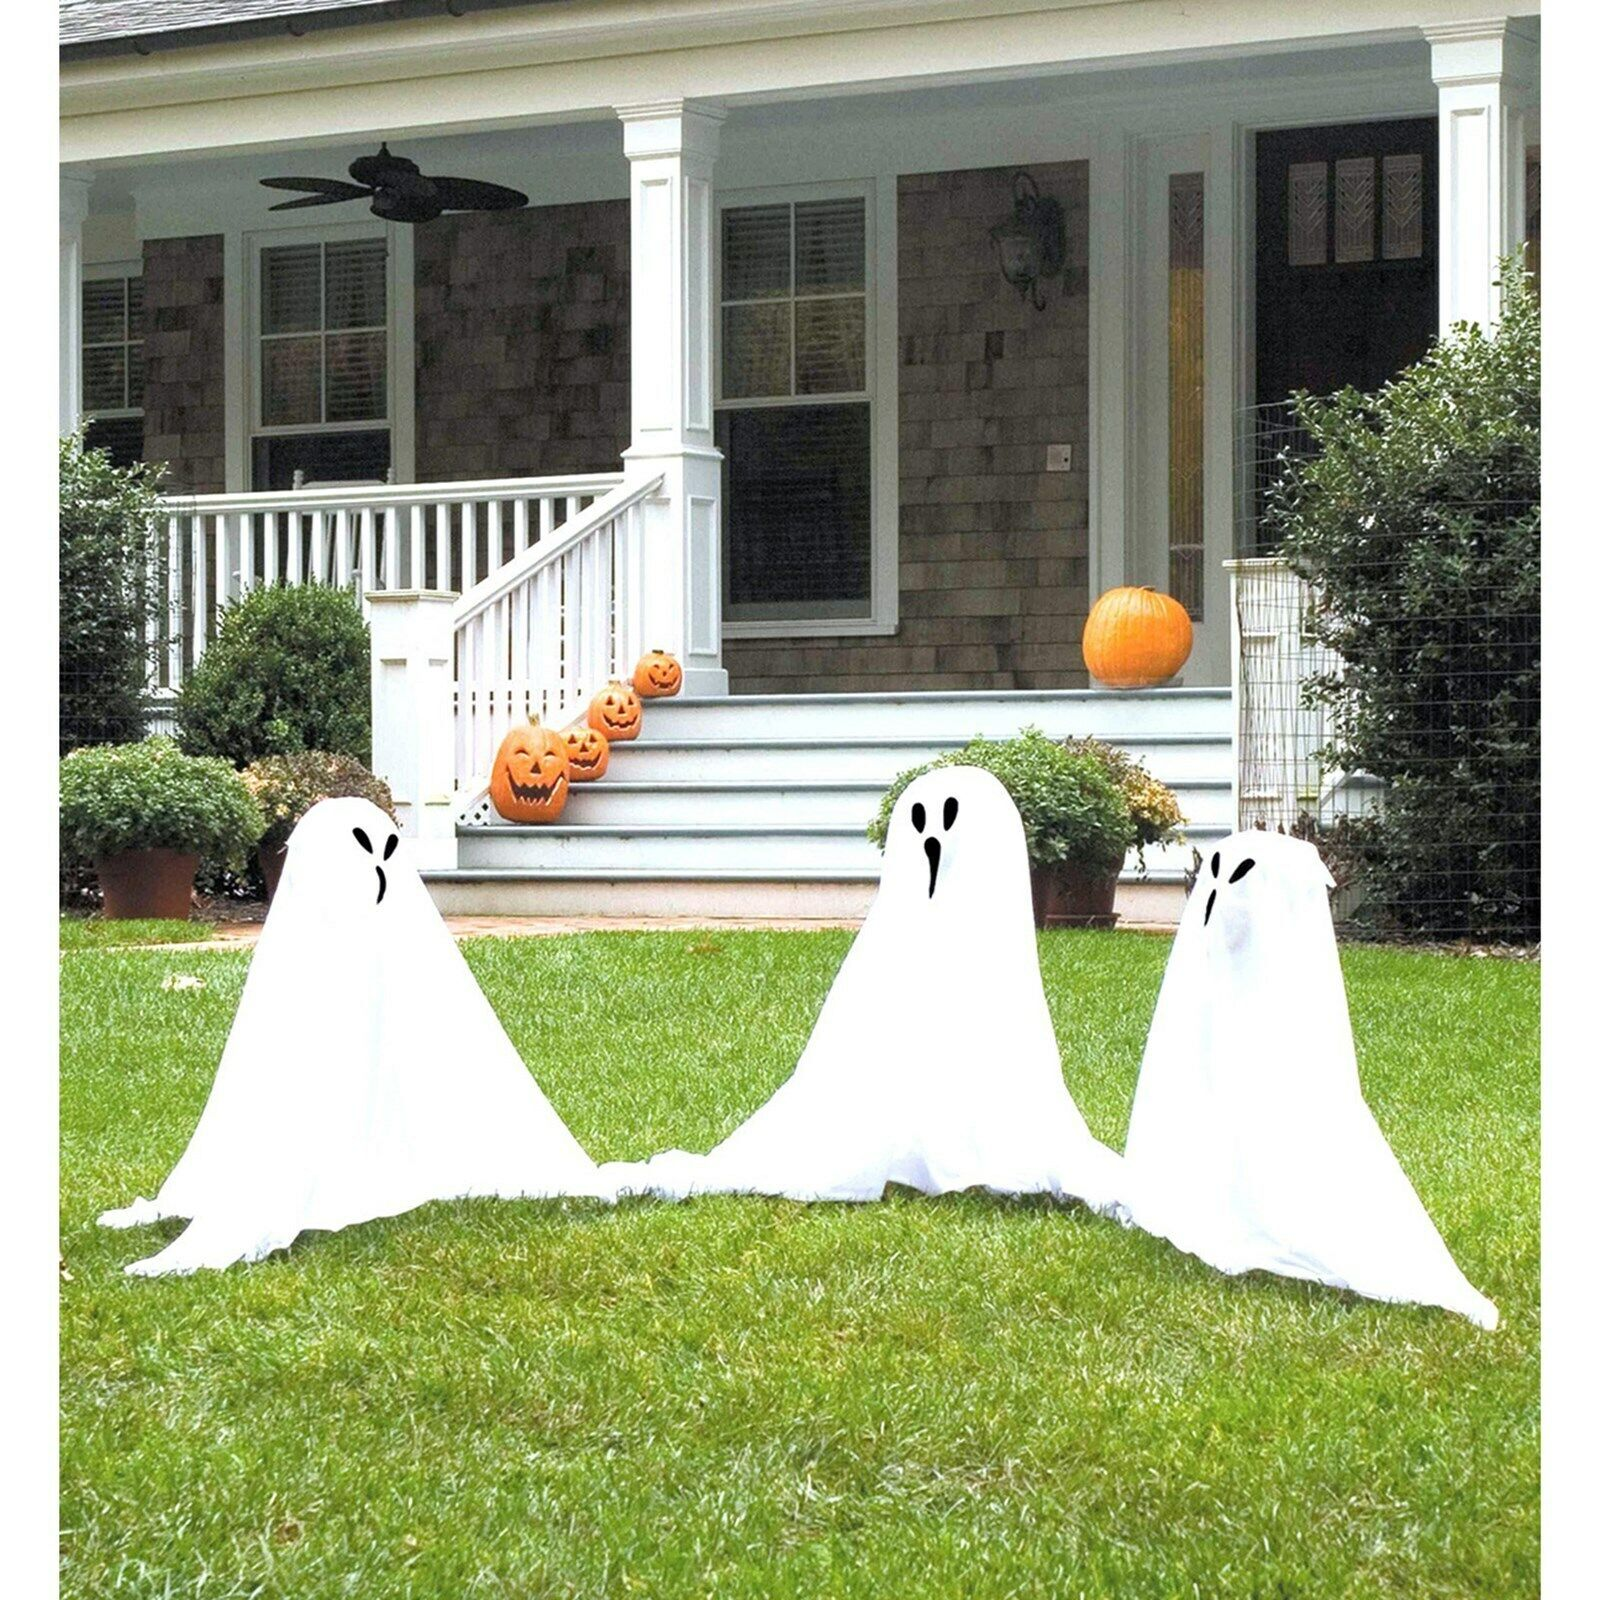 Halloween Ghosts 3 Pc Set Outdoor Yard Decor Ghost Lawn Light Up Prop Decoration